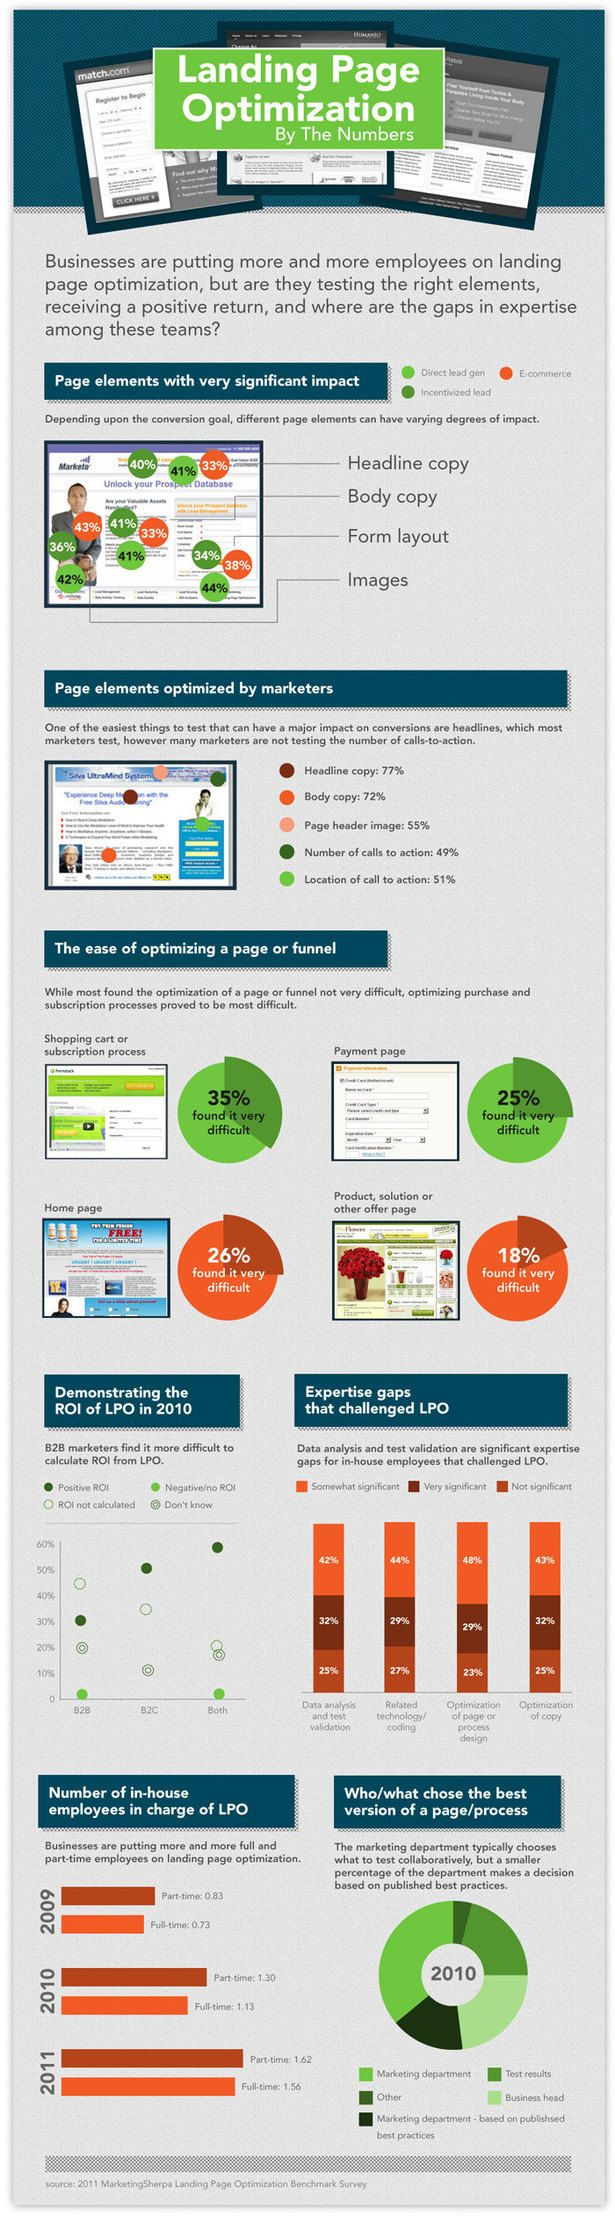 Landing Page Optimisation Numbers [Infographic]